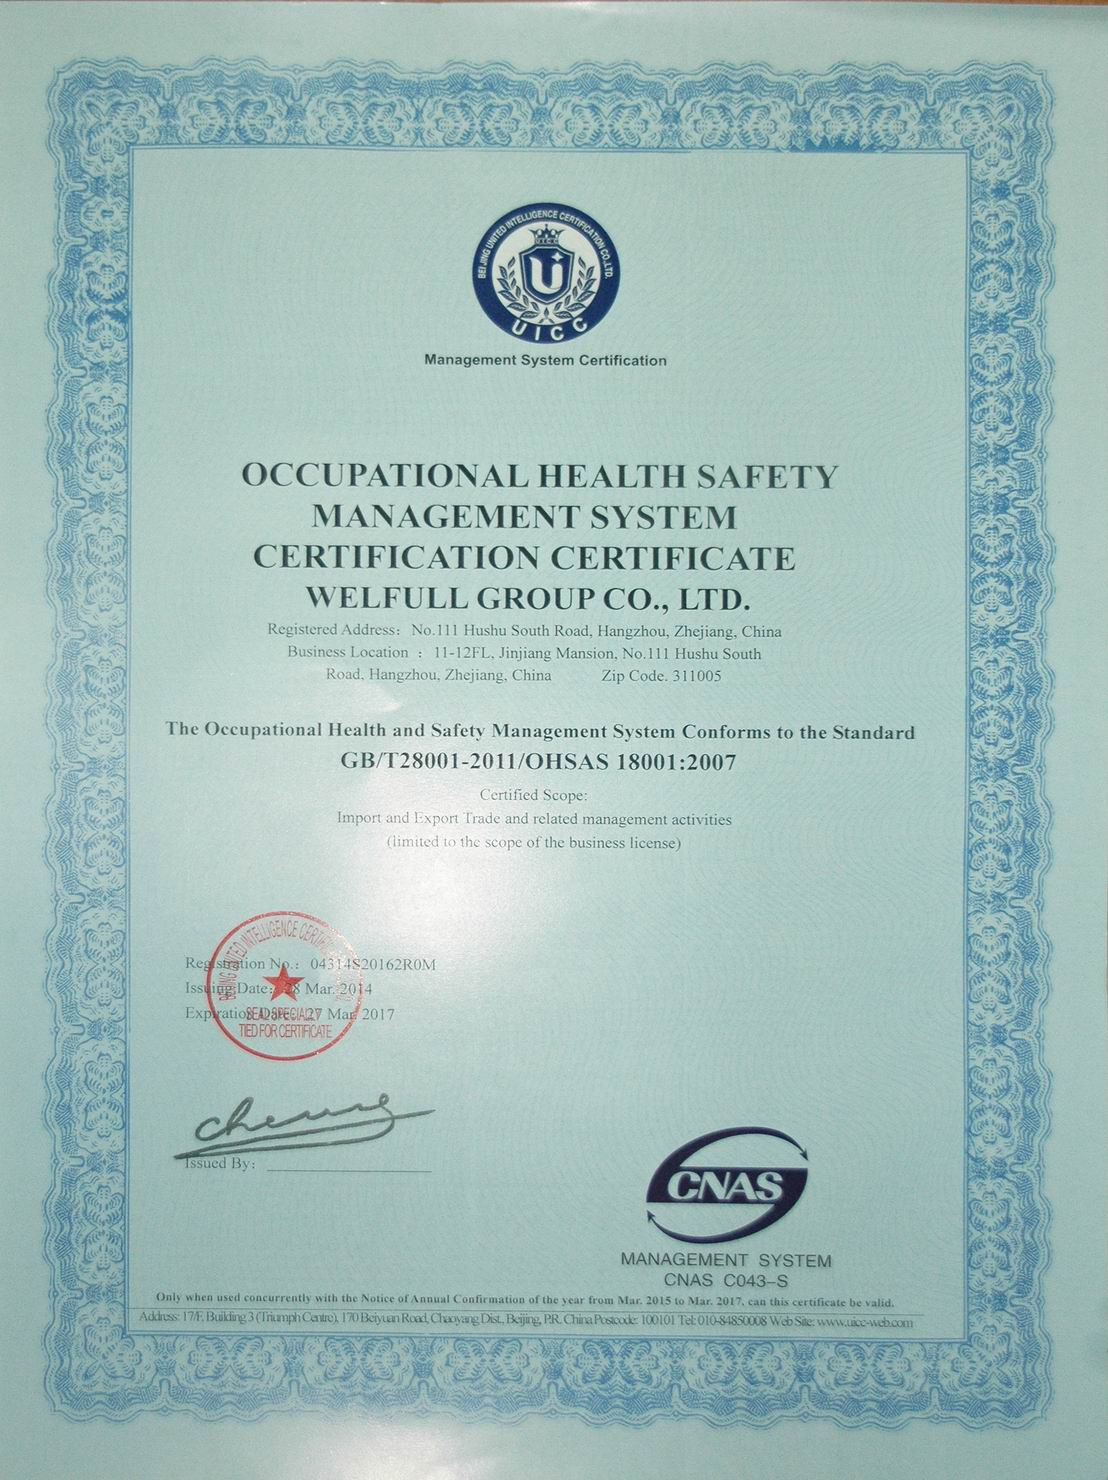 The Occupational Health and Safety Management System Certificate